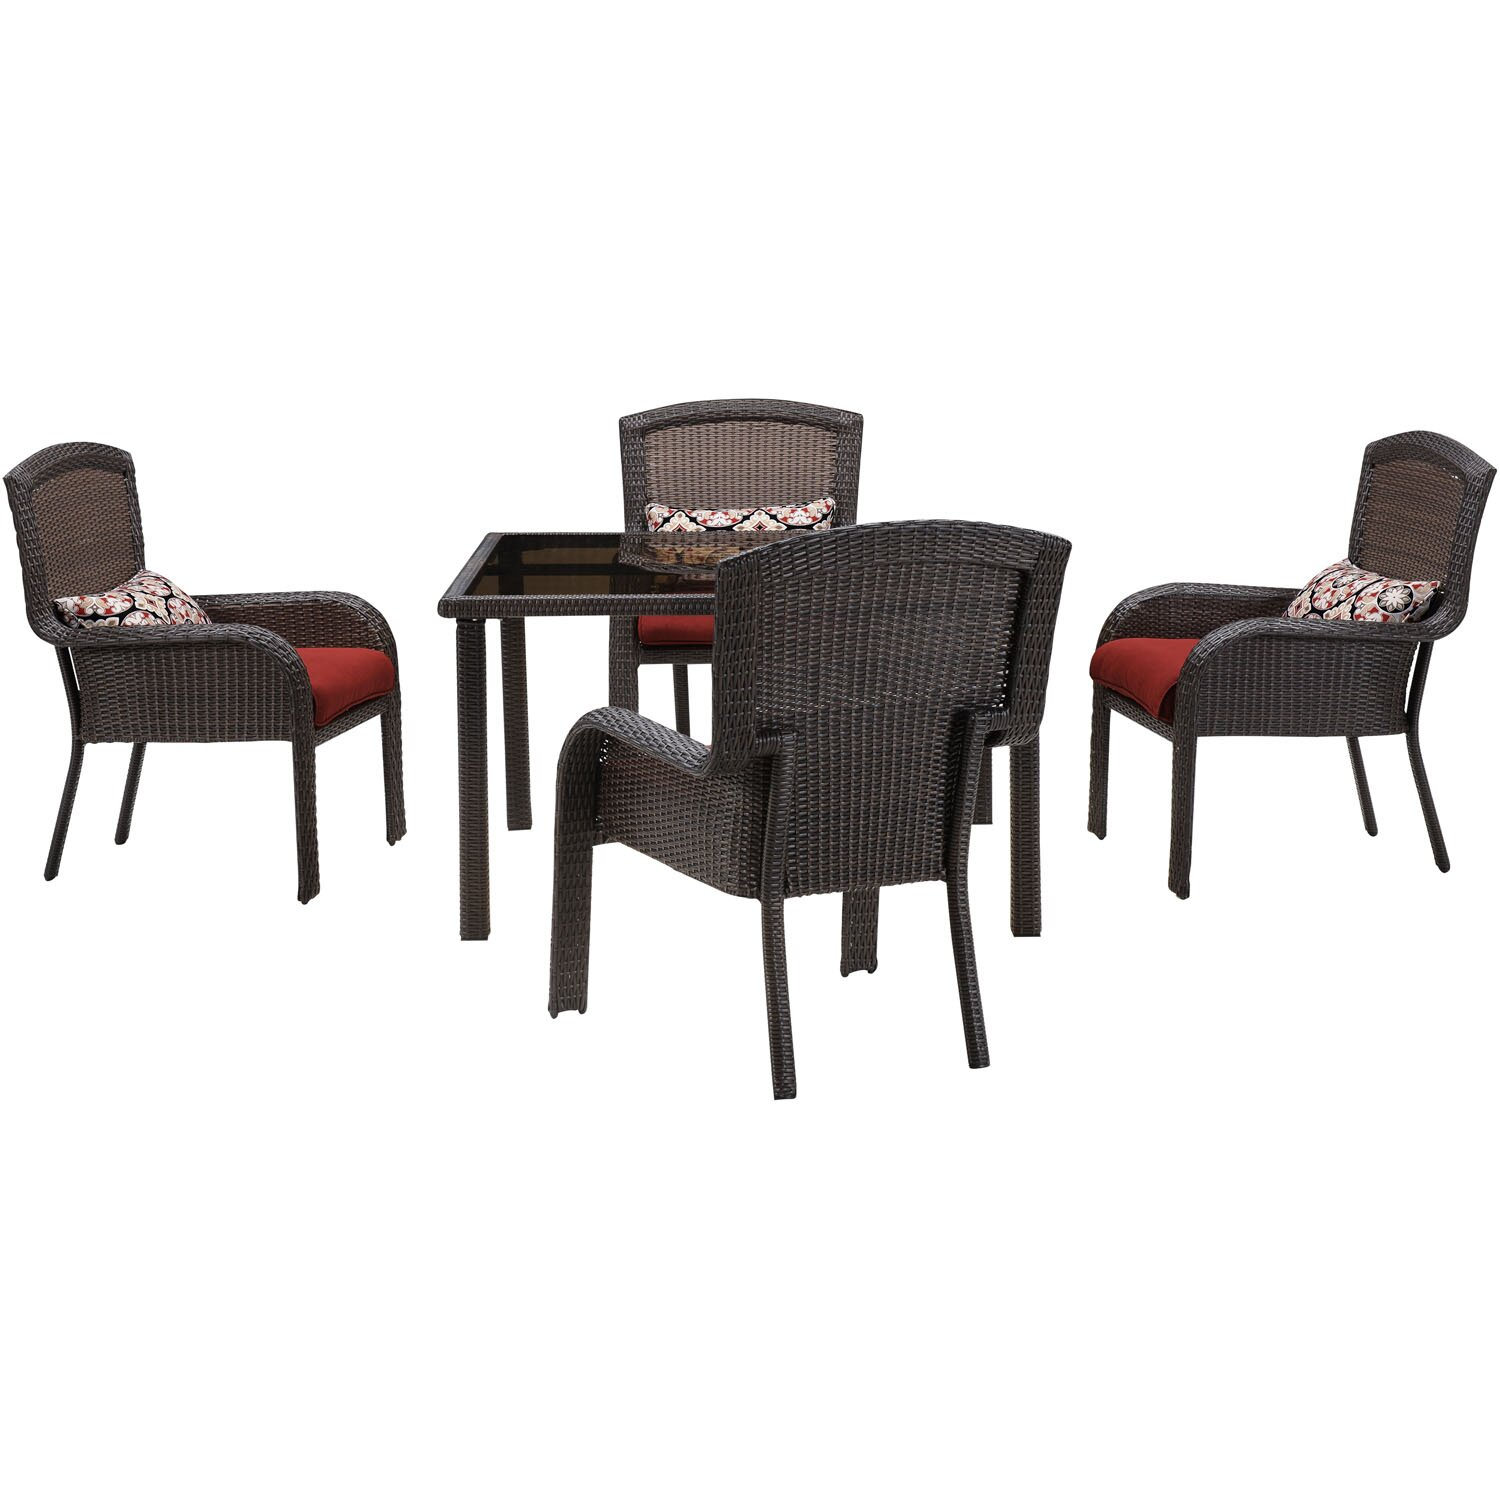 Hanover strathmere 5 piece dining set wayfair for 5 piece dining set